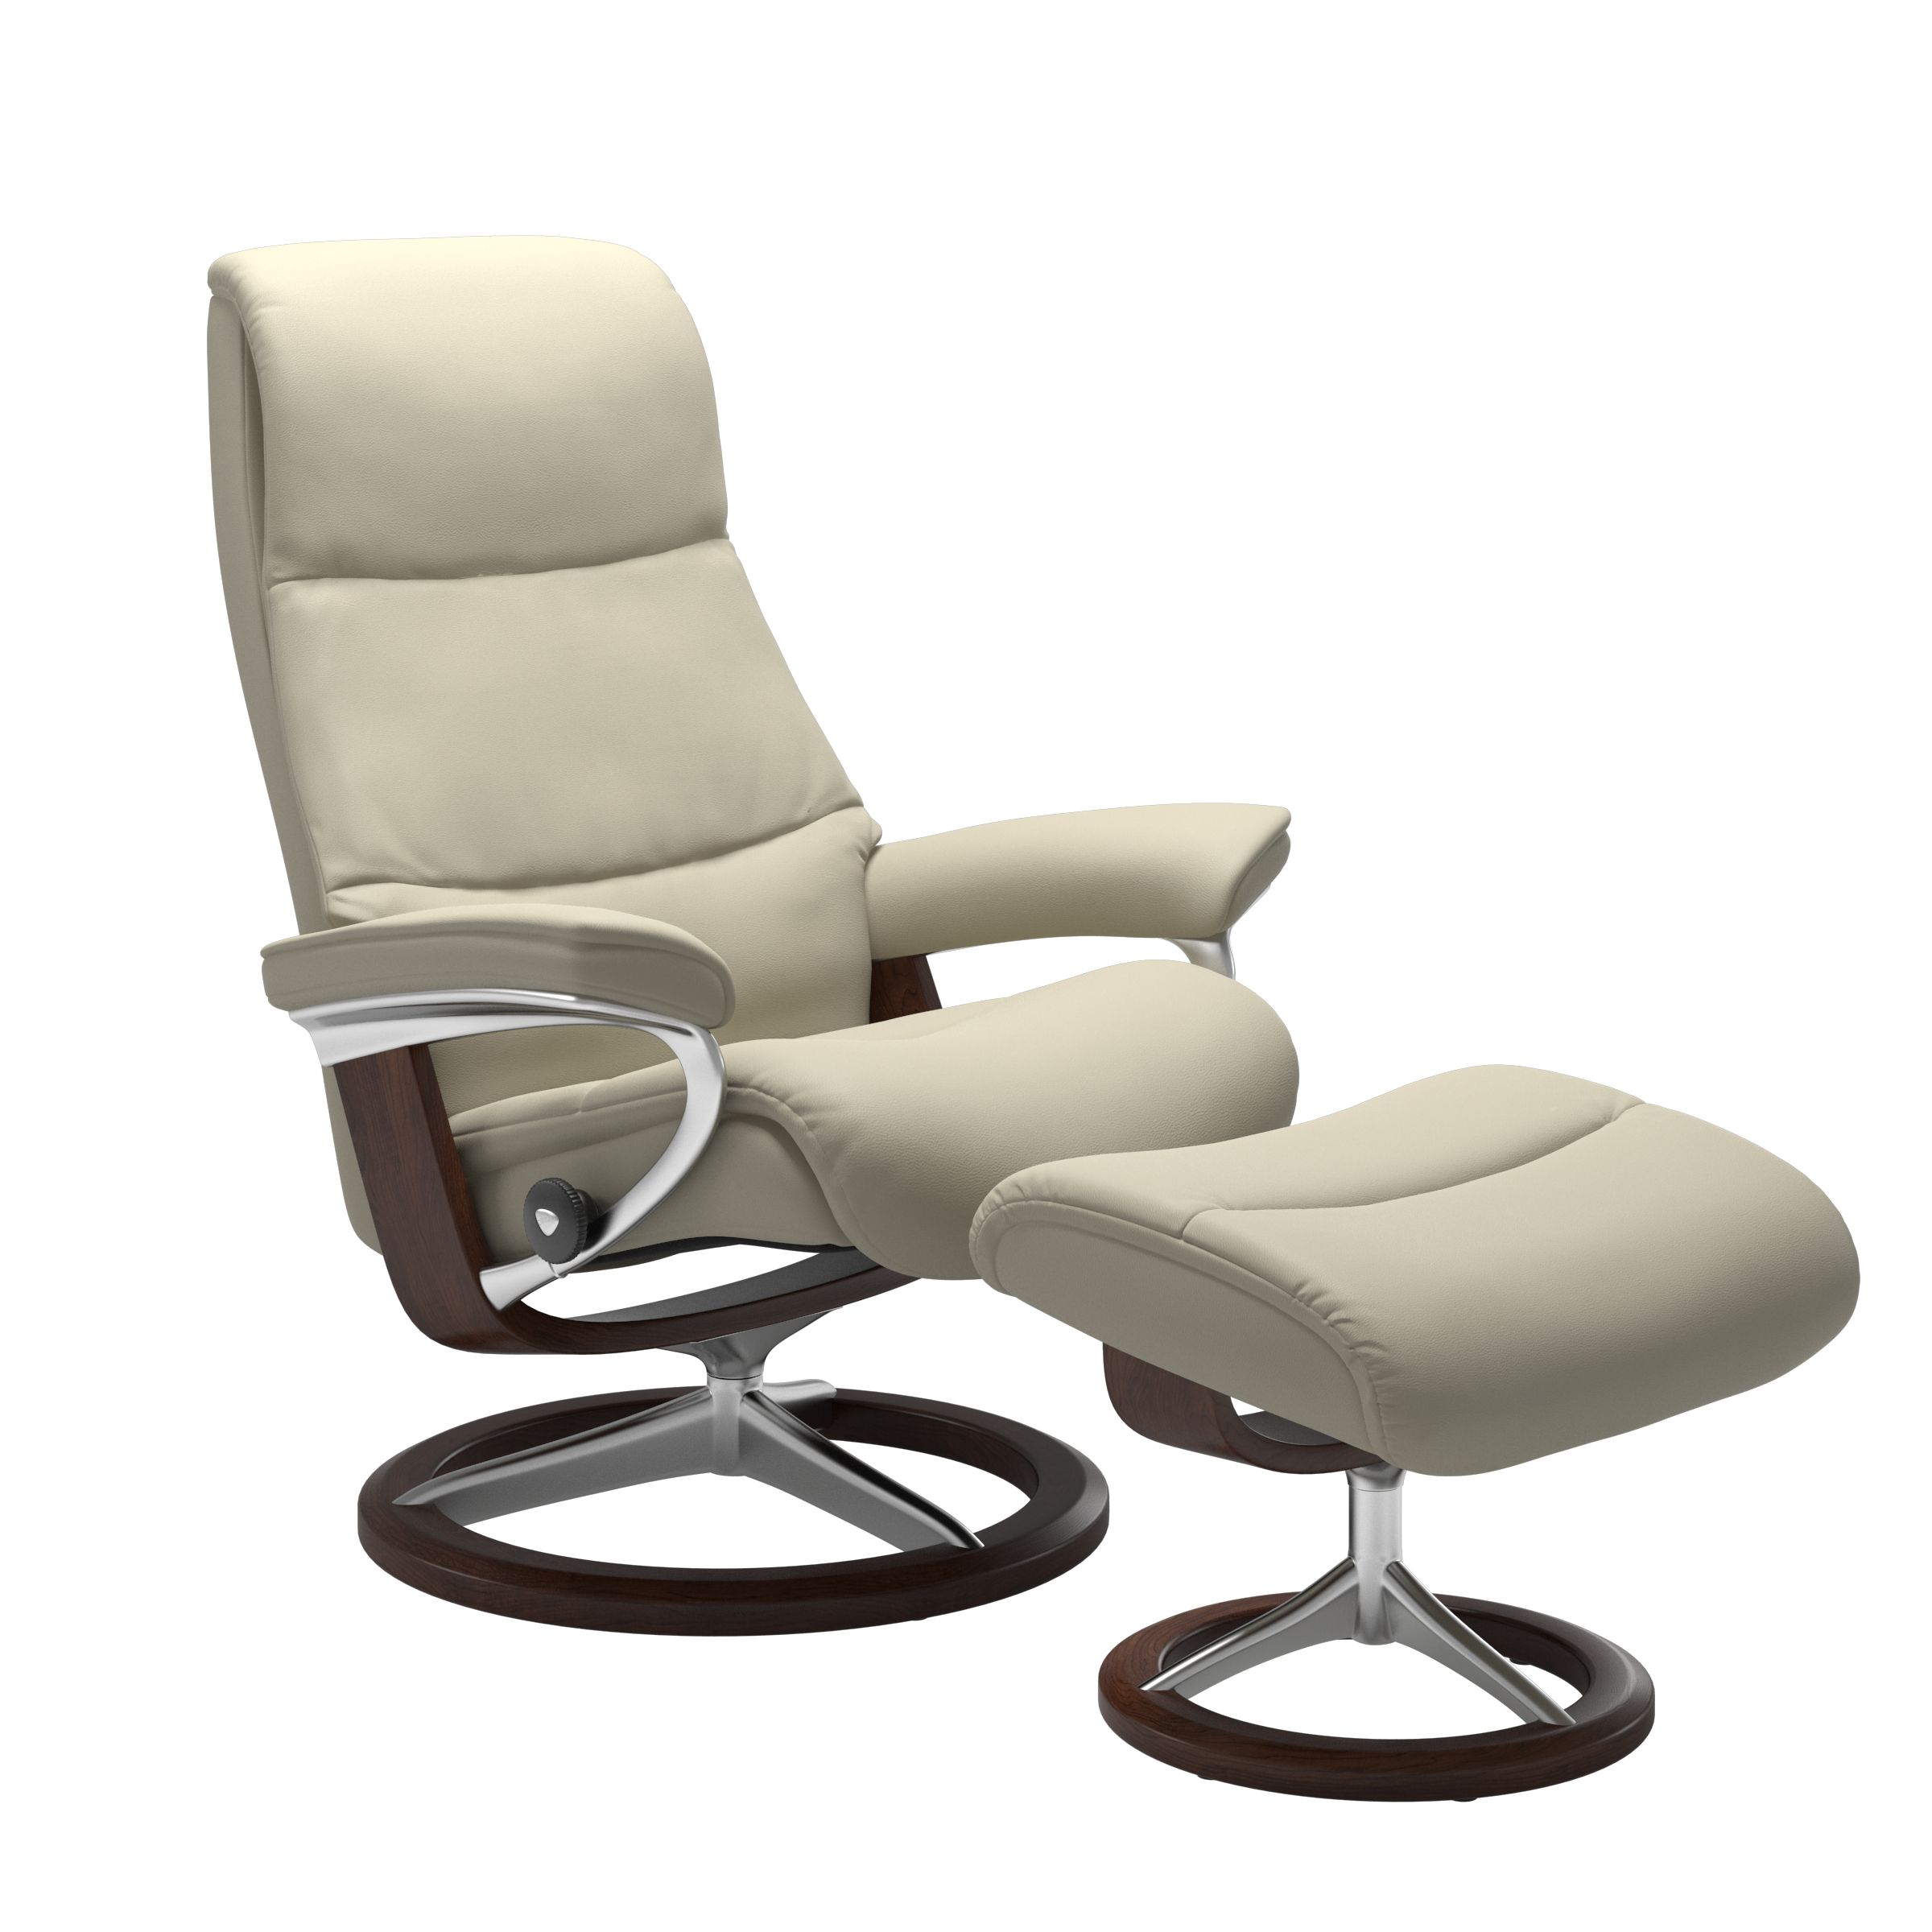 Stressless Fernsehsessel View Relax Oder Gamingsessel Stressless Relaxsessel